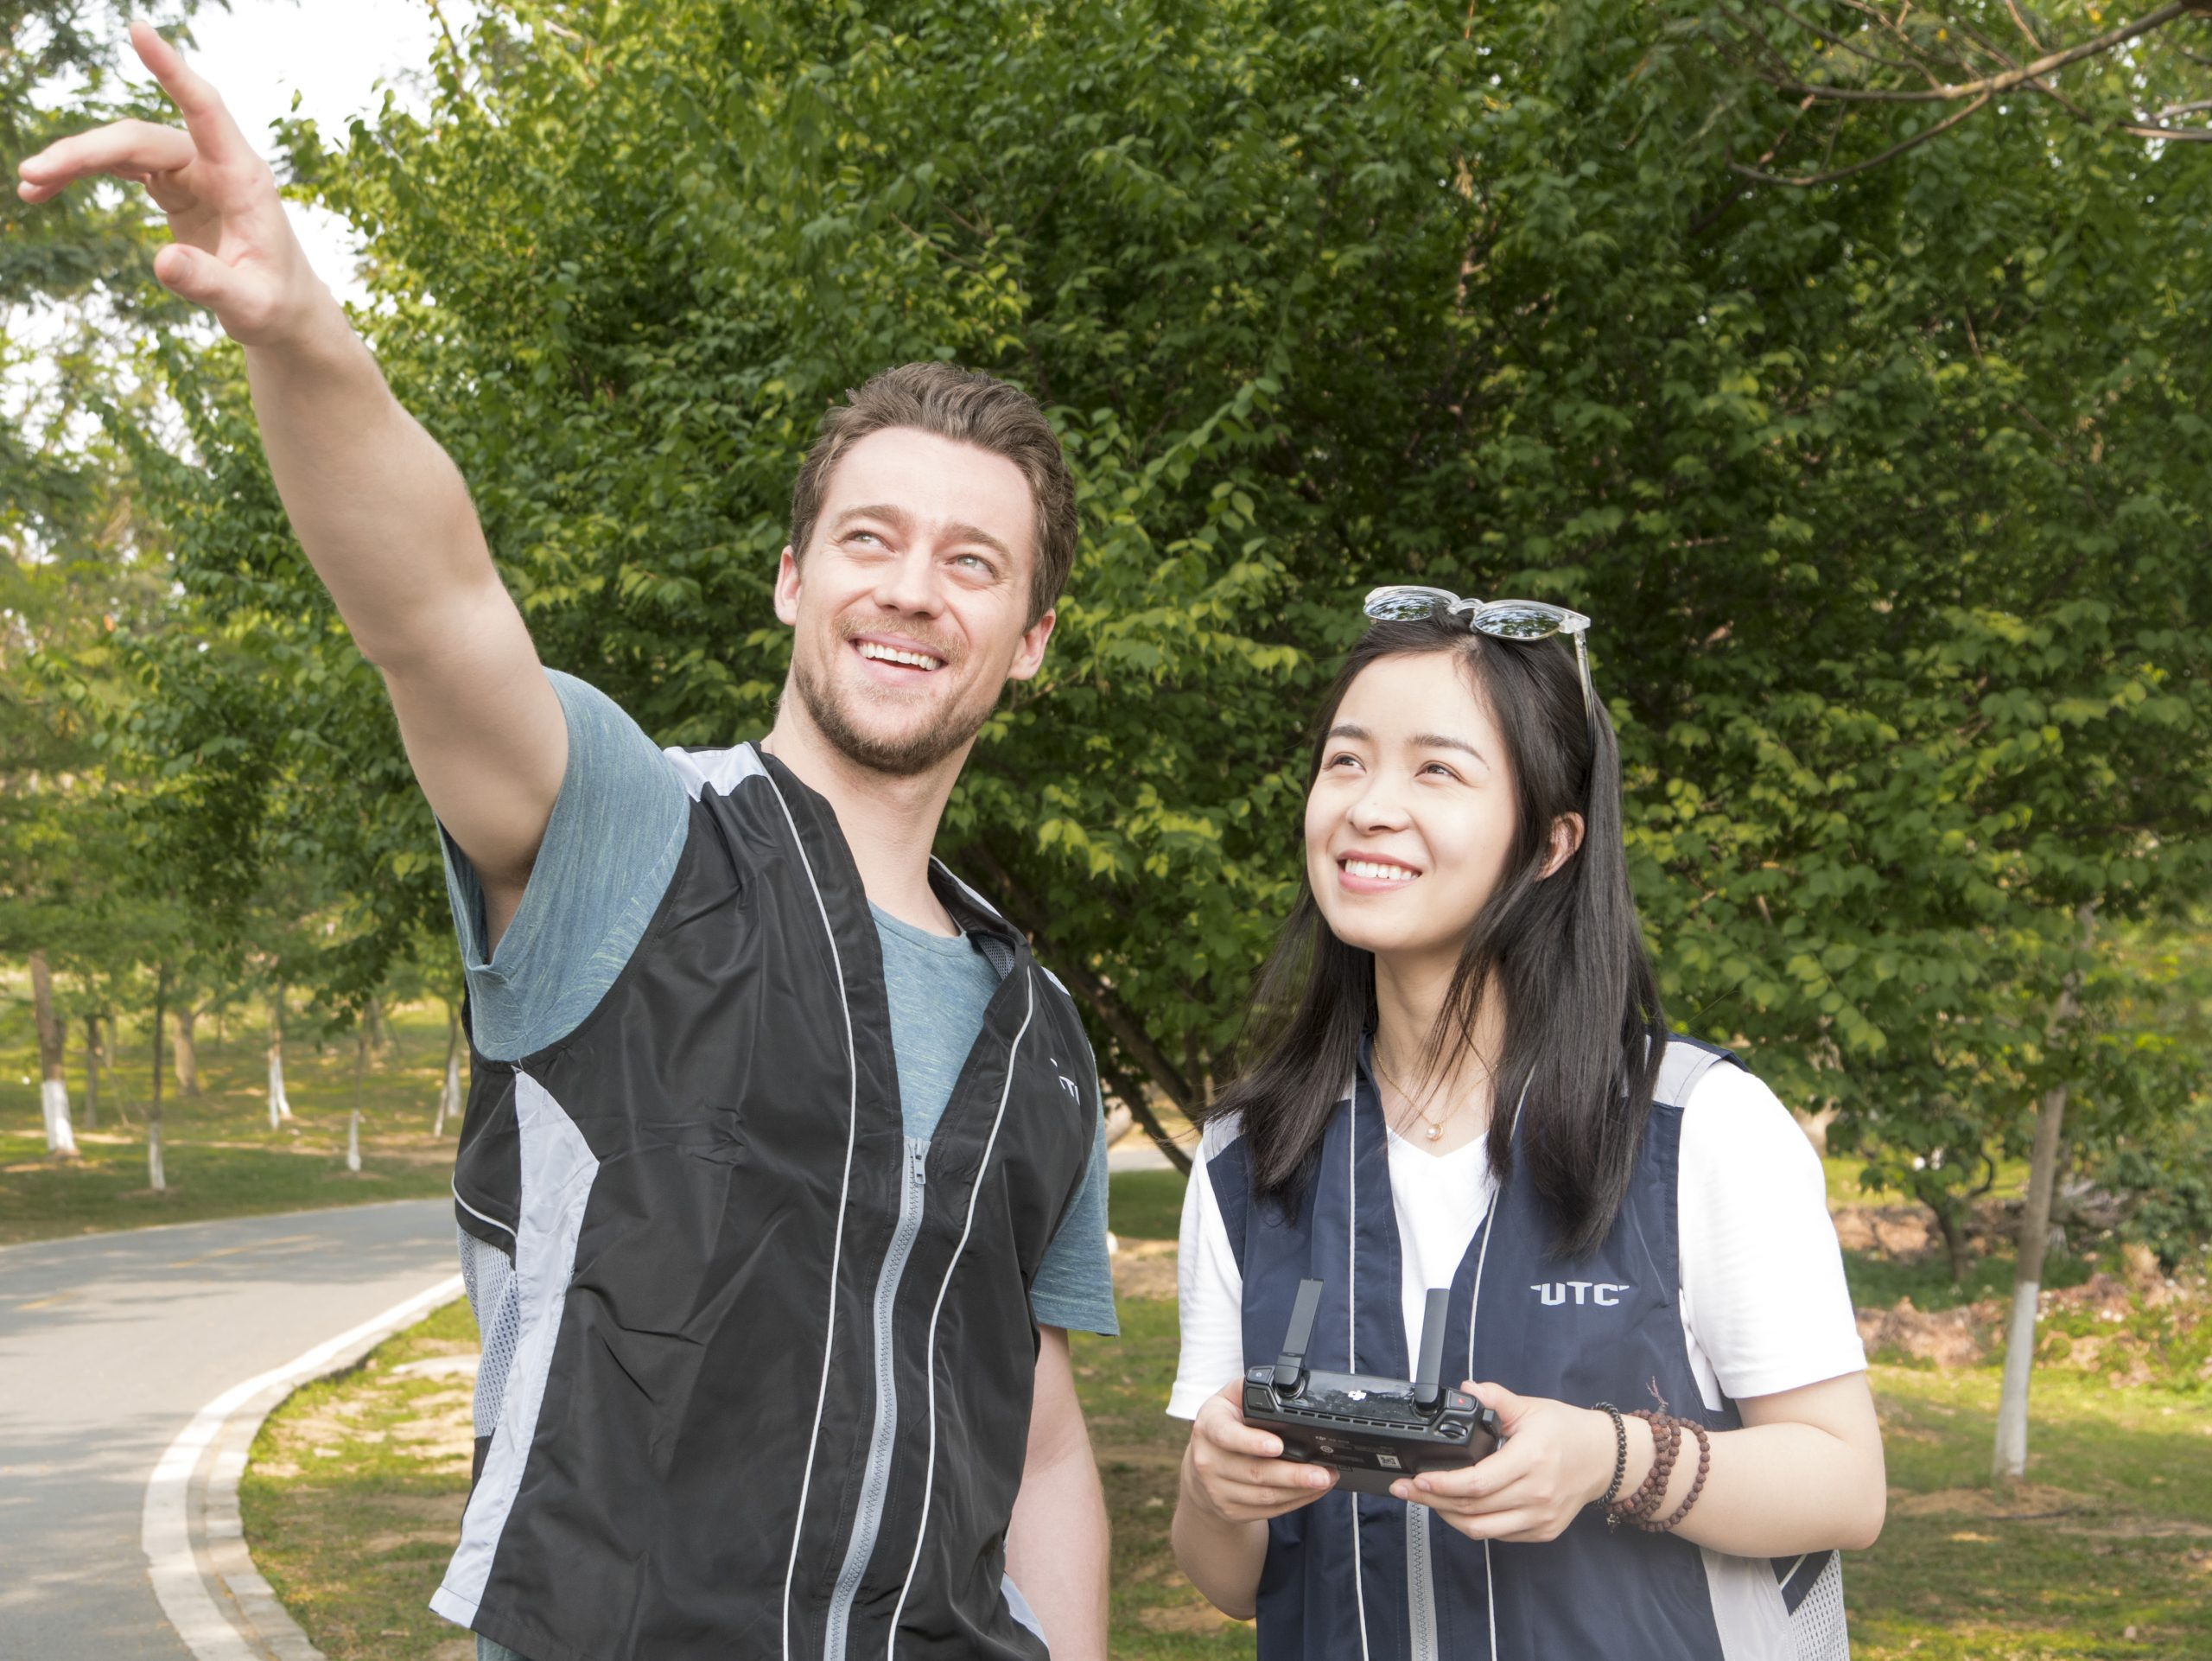 Drone Pilot Training Course Malaysia is having a drone sightseeing